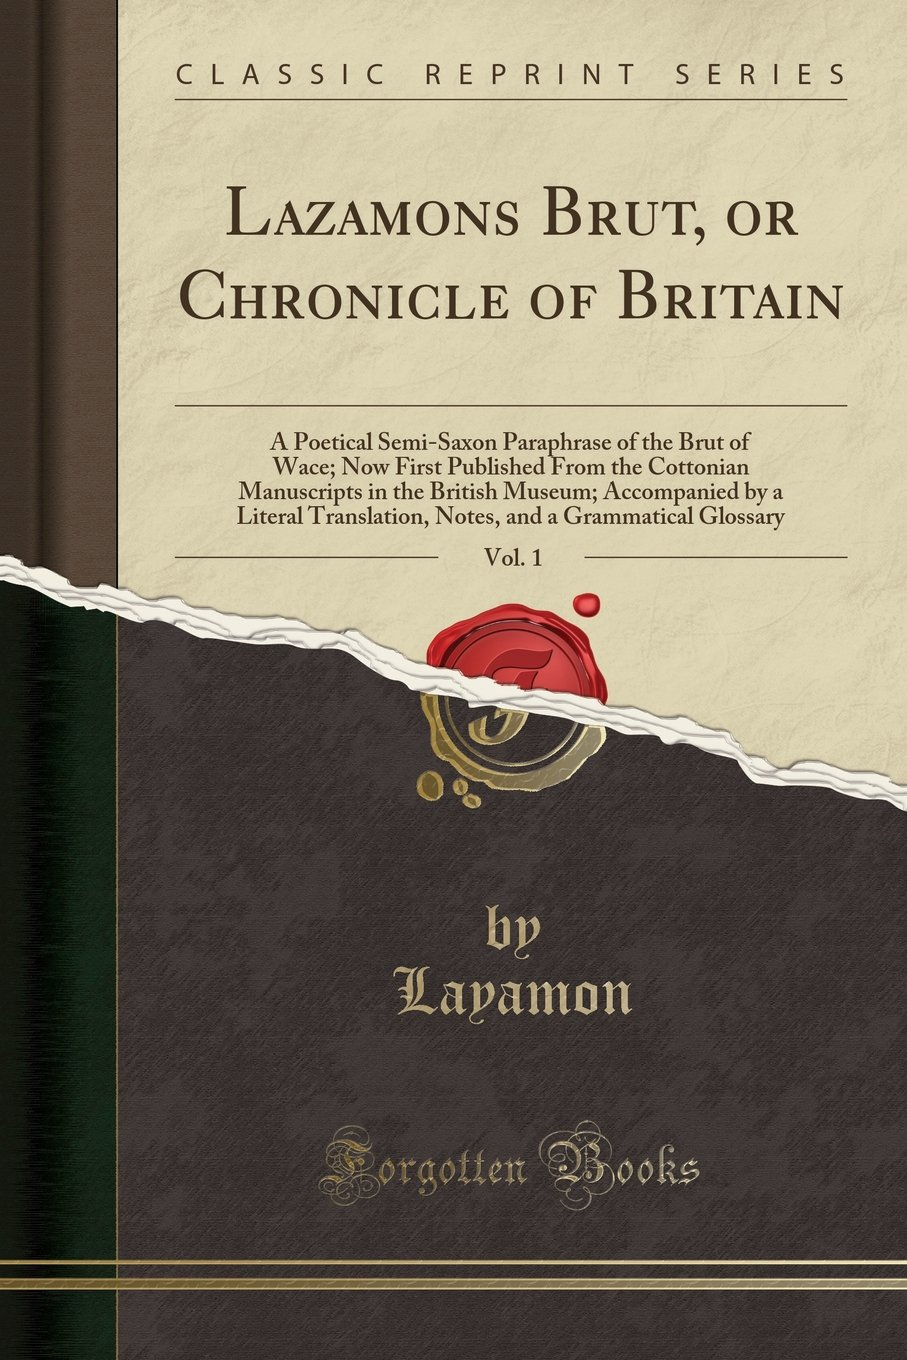 Lazamons Brut, or Chronicle of Britain, Vol. 1: A Poetical Semi-Saxon Paraphrase of the Brut of Wace; Now First Published From the Cottonian ... Notes, and a Grammatical Glossary pdf